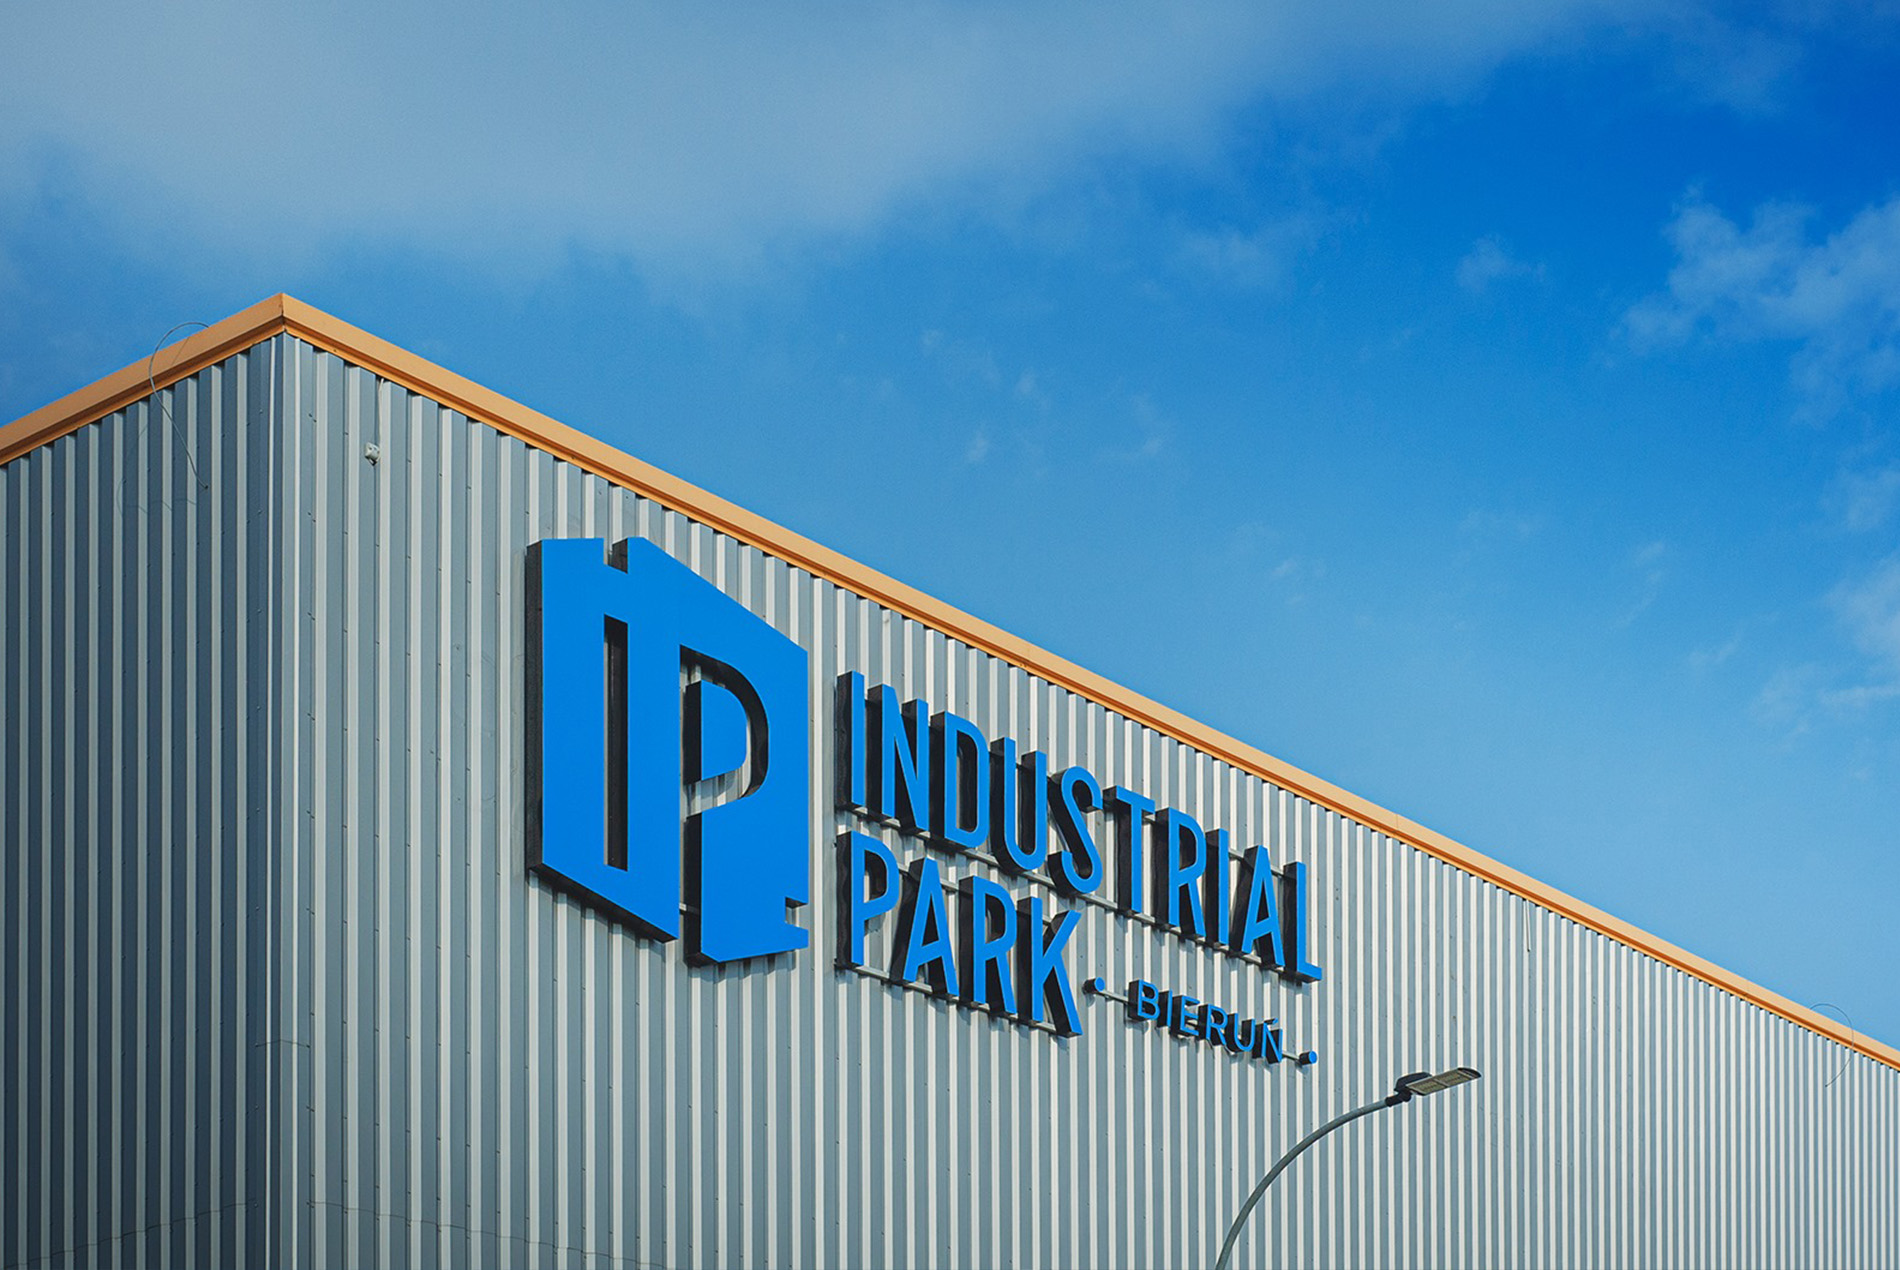 INDUSTRIAL PARK - 1